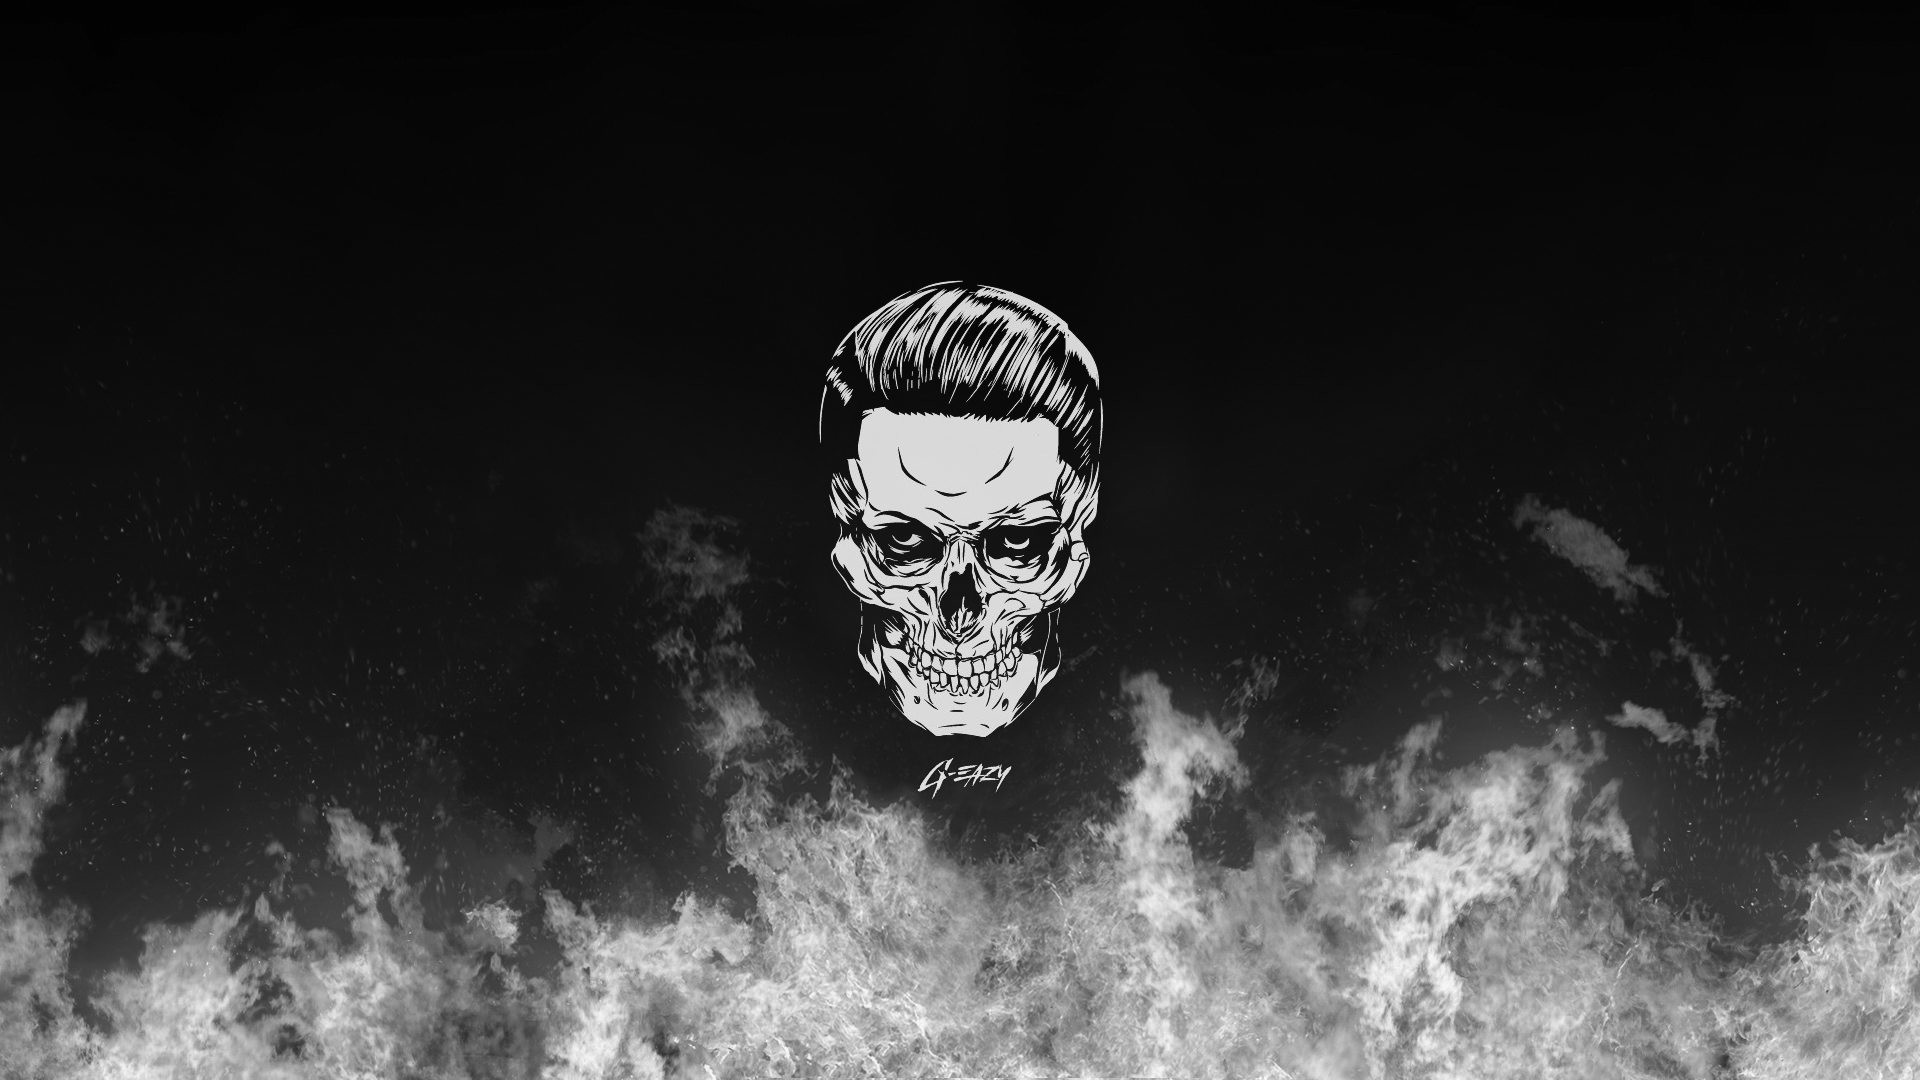 eazy Skull, HQ Backgrounds | HD wallpapers Gallery | Gallsource.com